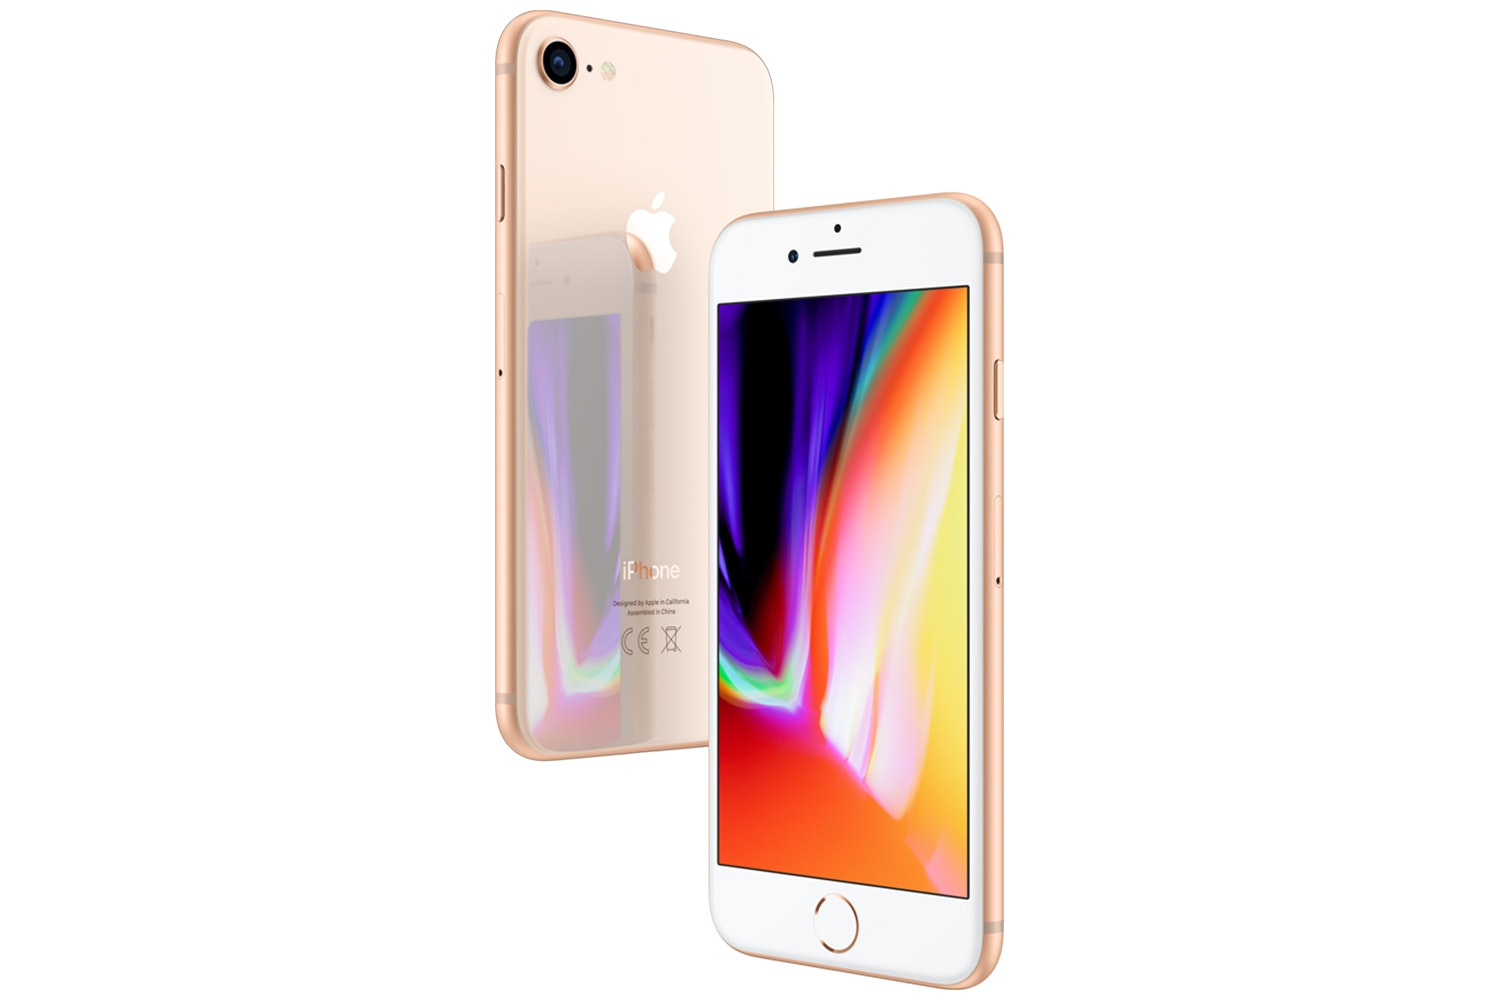 iPhone 8 | 256GB | Gold